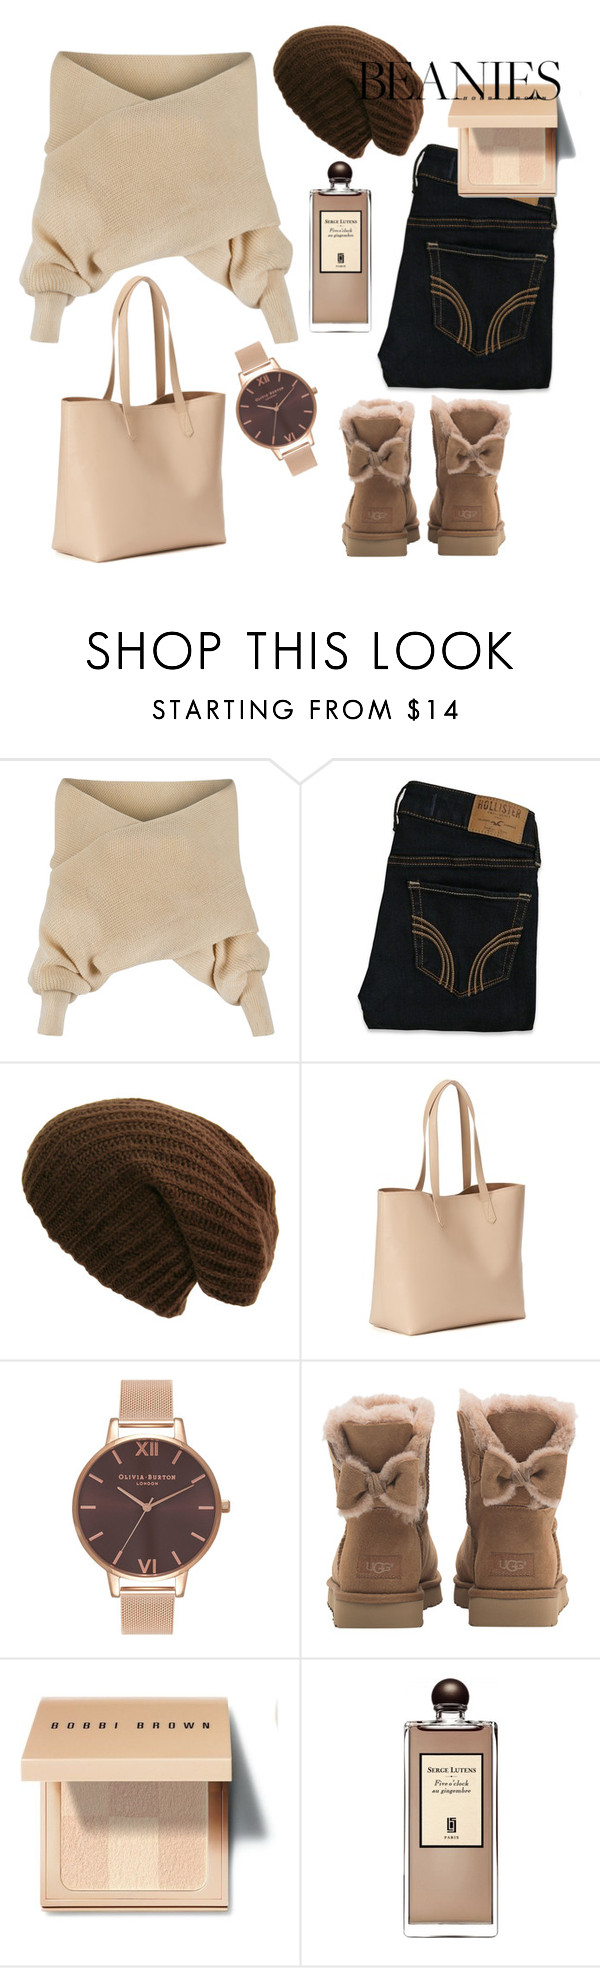 """""""︴beanie  ︴"""" by goodvibesonlycalifornia ❤ liked on Polyvore featuring WithChic, Hollister Co., Old Navy, Olivia Burton, UGG, Bobbi Brown Cosmetics and Serge Lutens"""